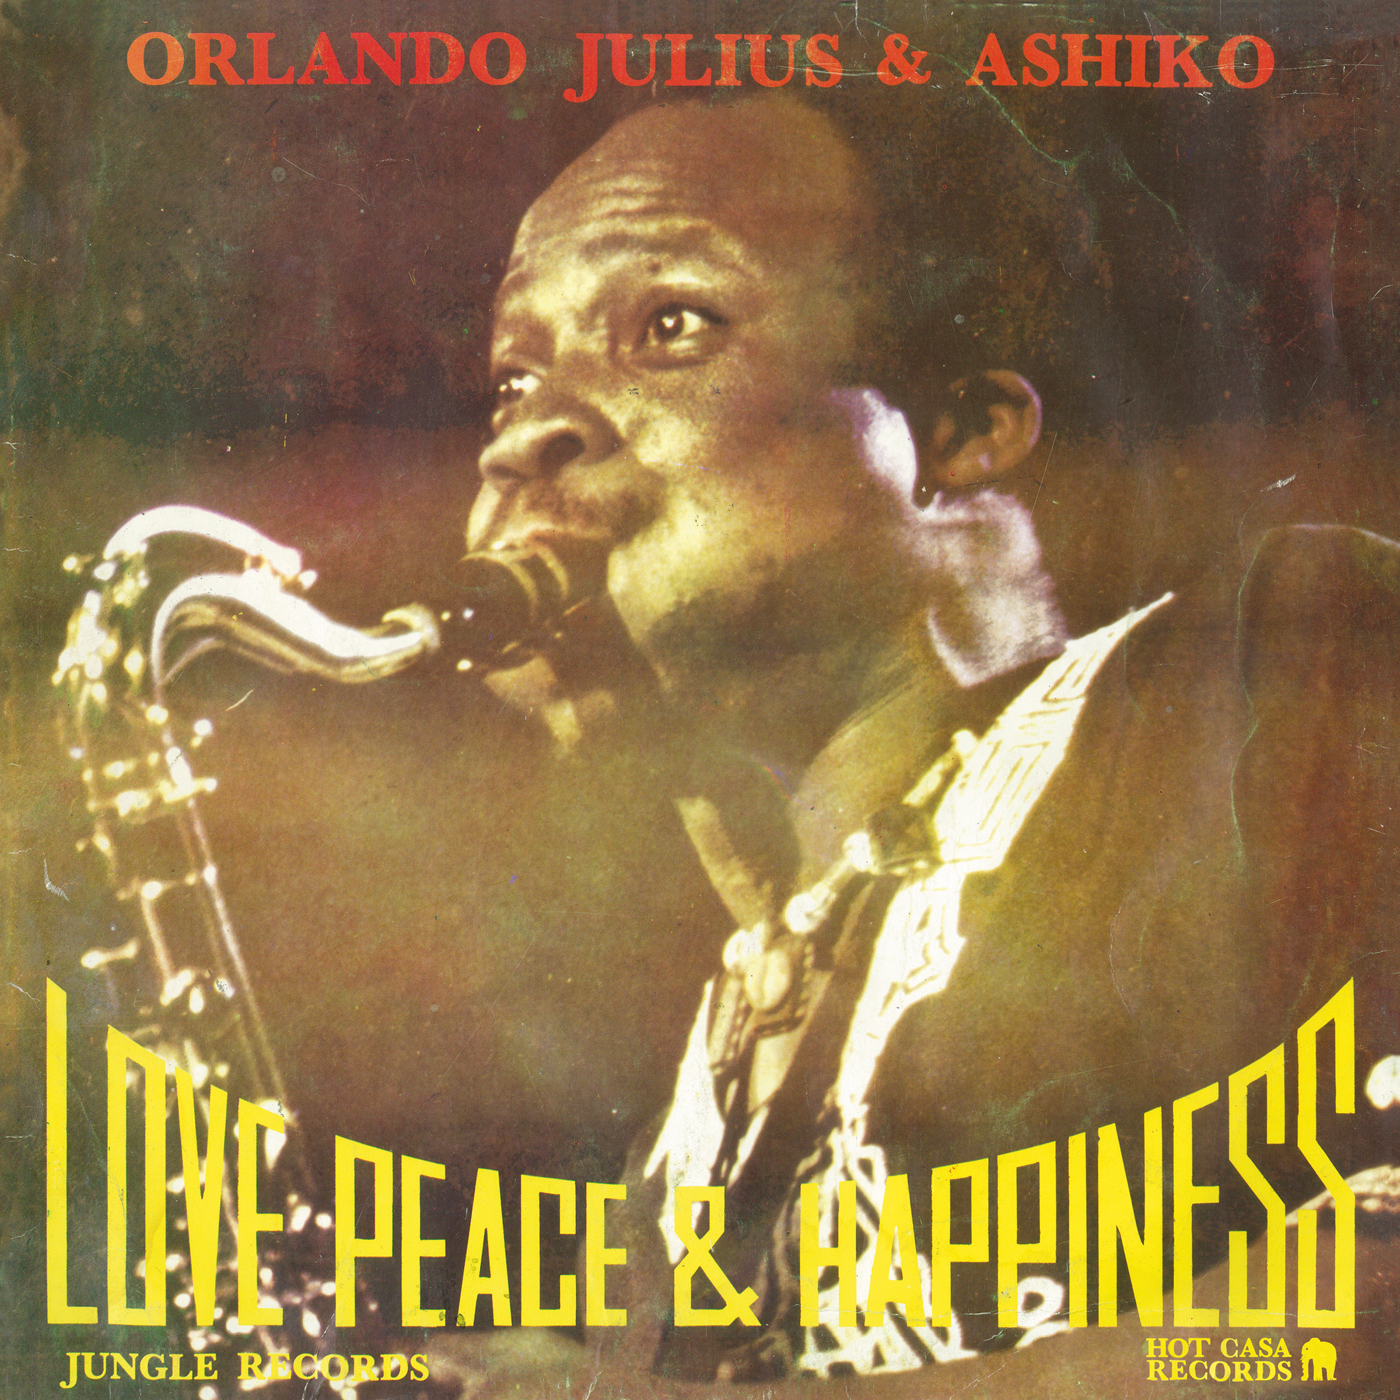 ORLANDO JULIUS & ASHIKO : Love Peace & Happiness